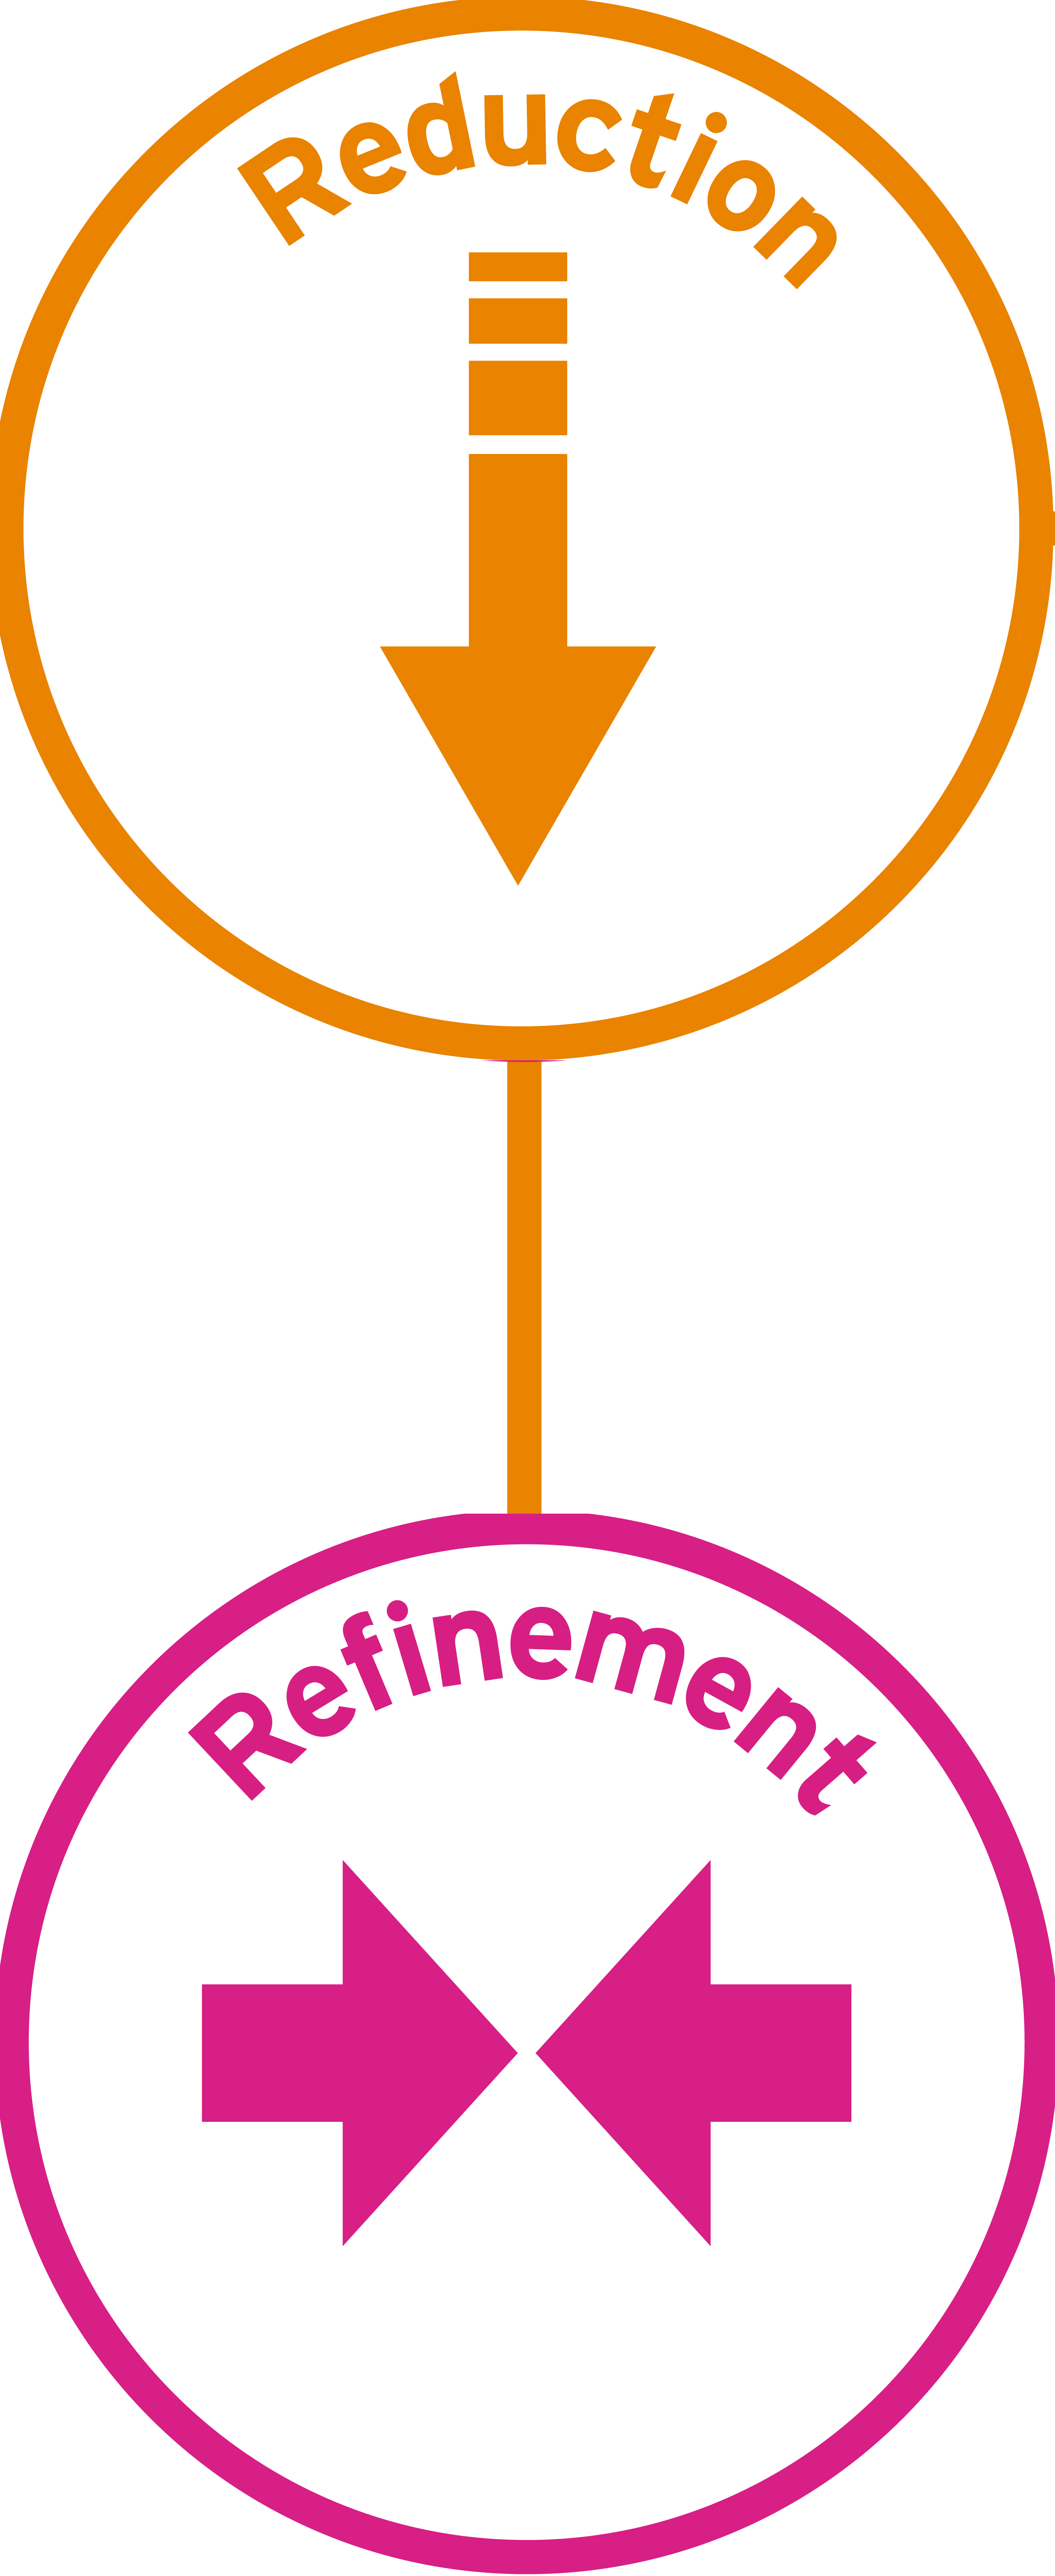 Reduction and refinement icon